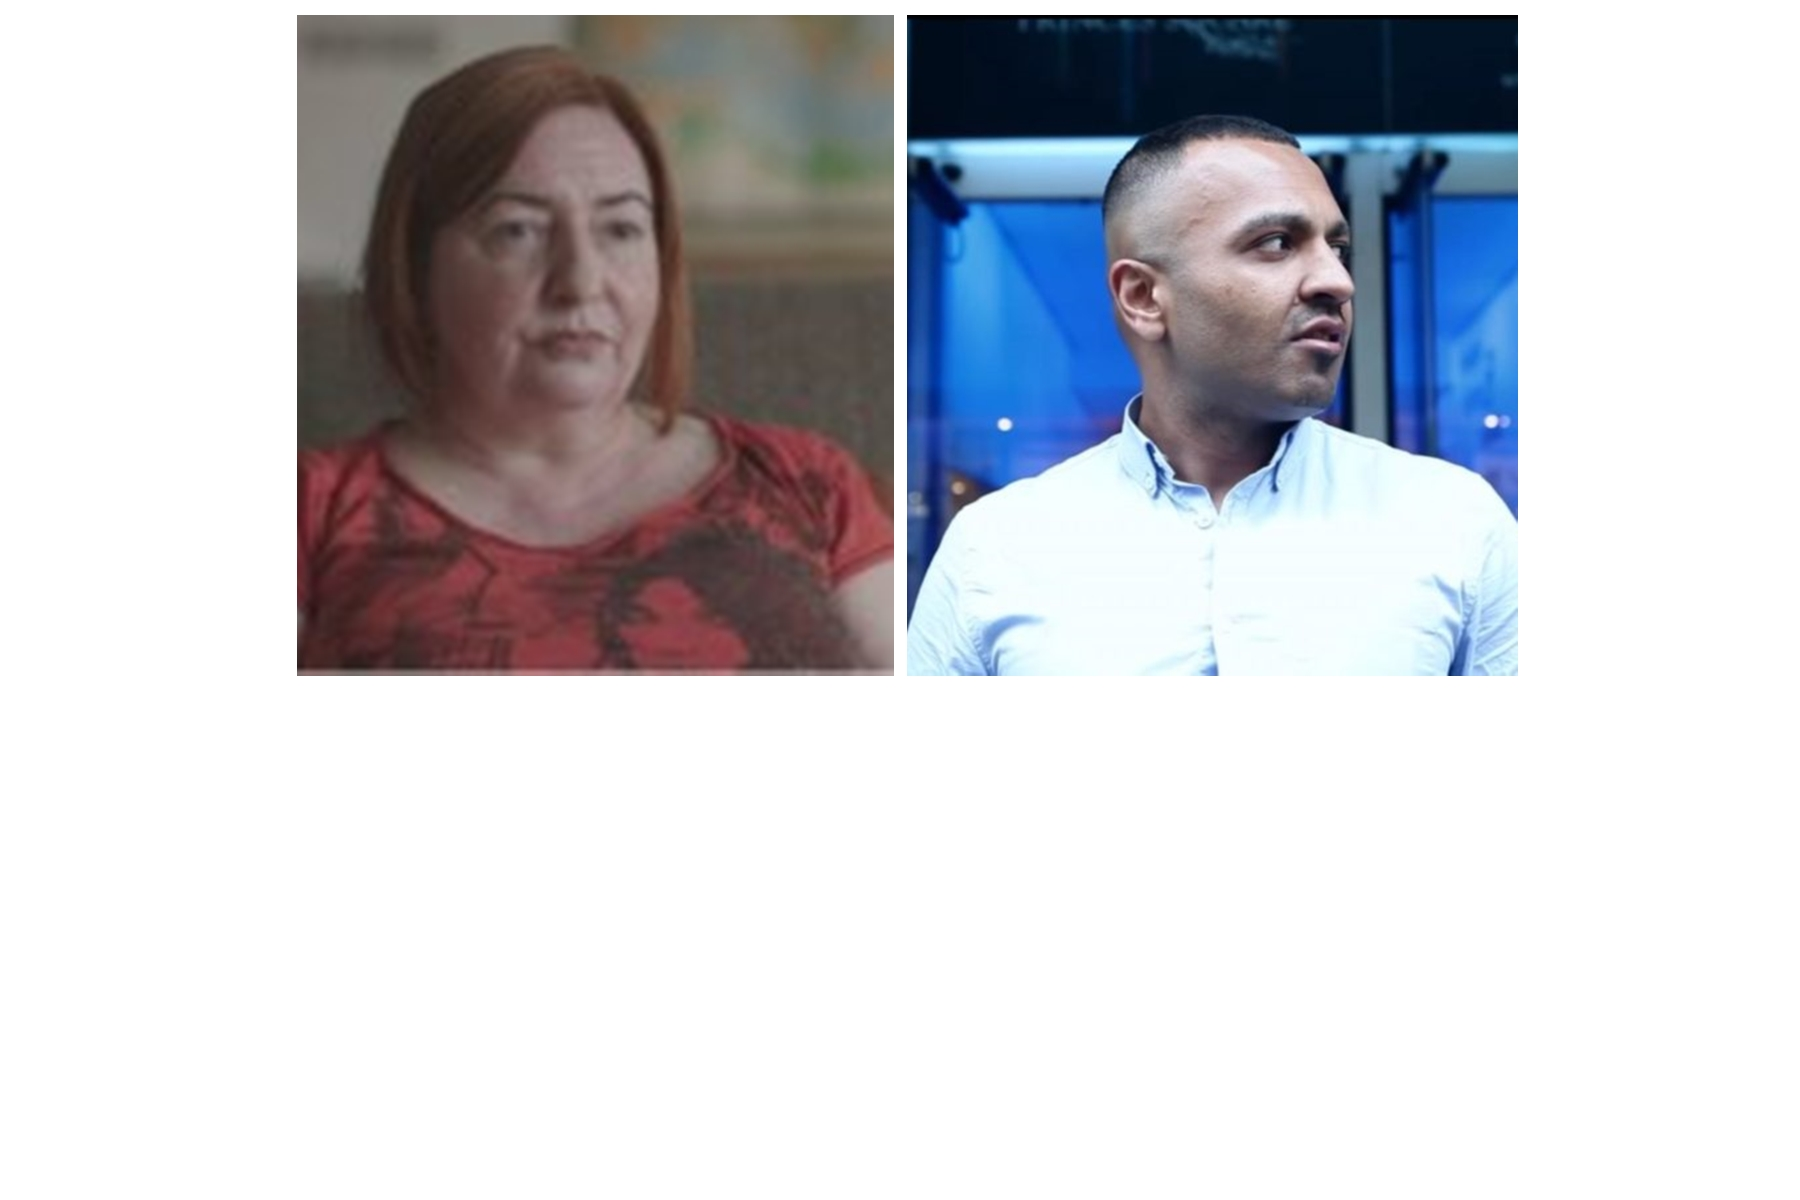 Addict Rita Bruce Set-Up Adnan Ahmed Because He Rejected Her Sexual Advances, After She Sexually Assaulted Him And She Racially Abused Him